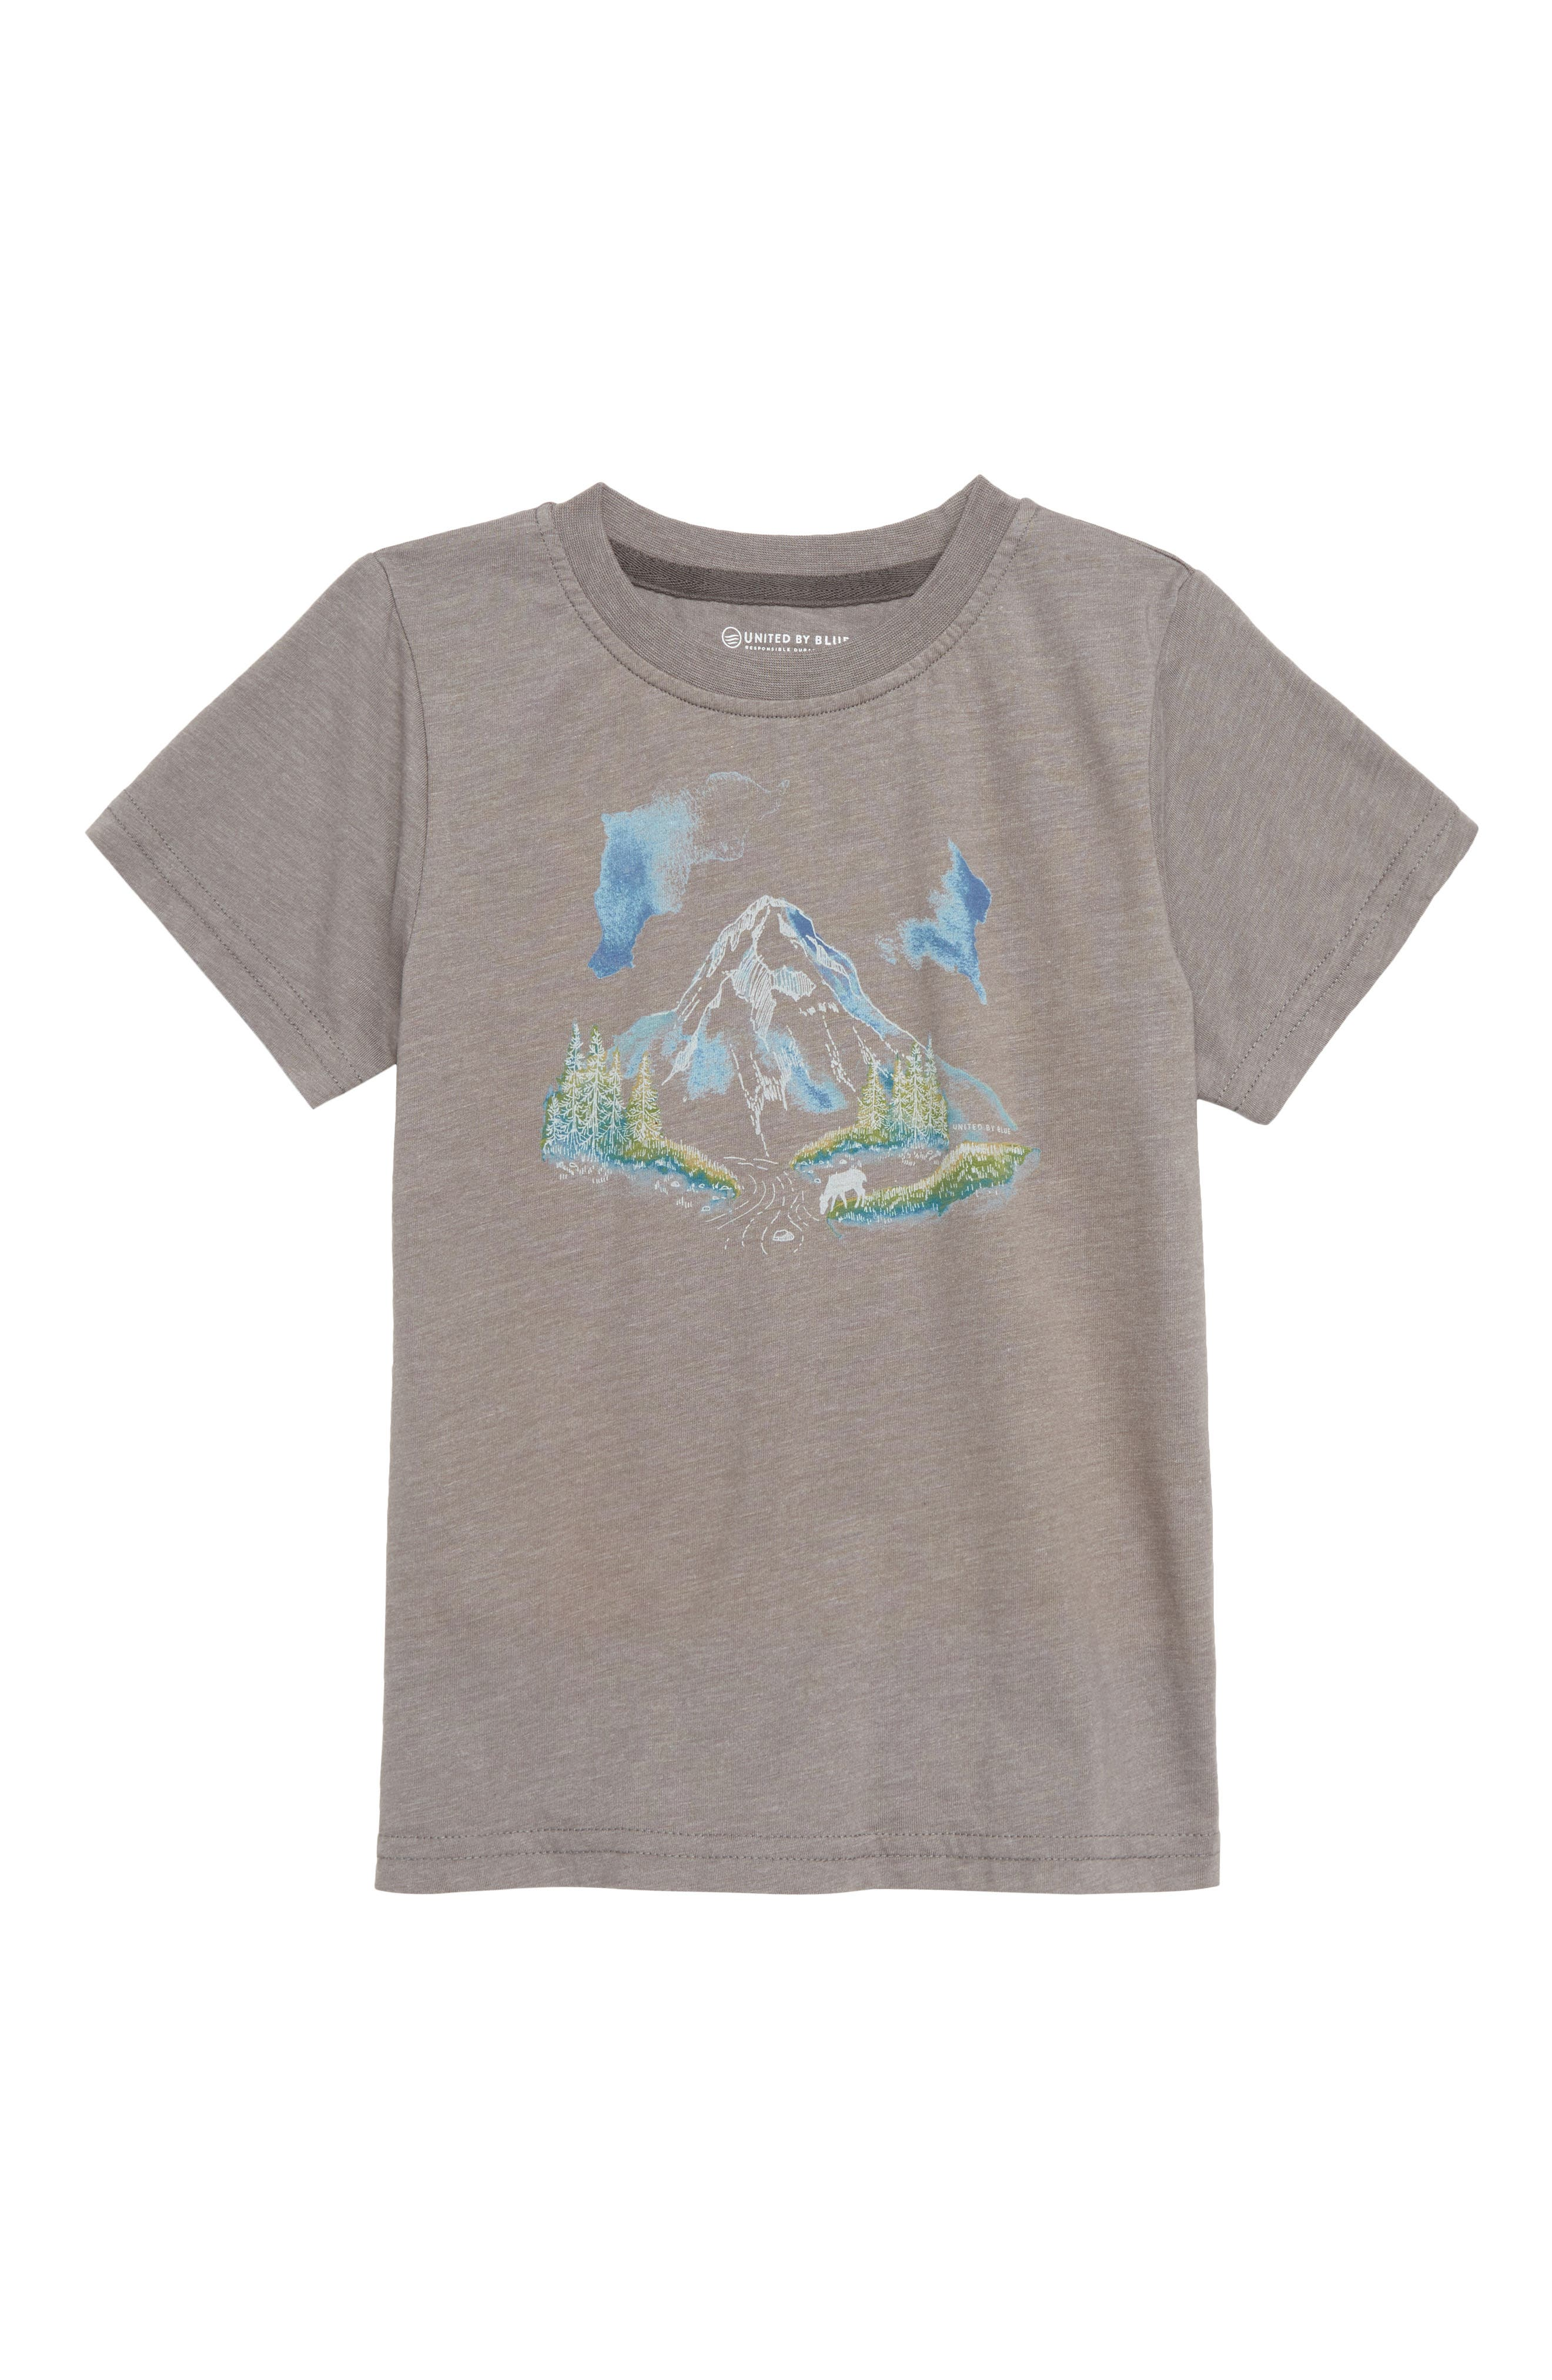 River Mountain T-Shirt,                             Main thumbnail 1, color,                             STEEL GREY